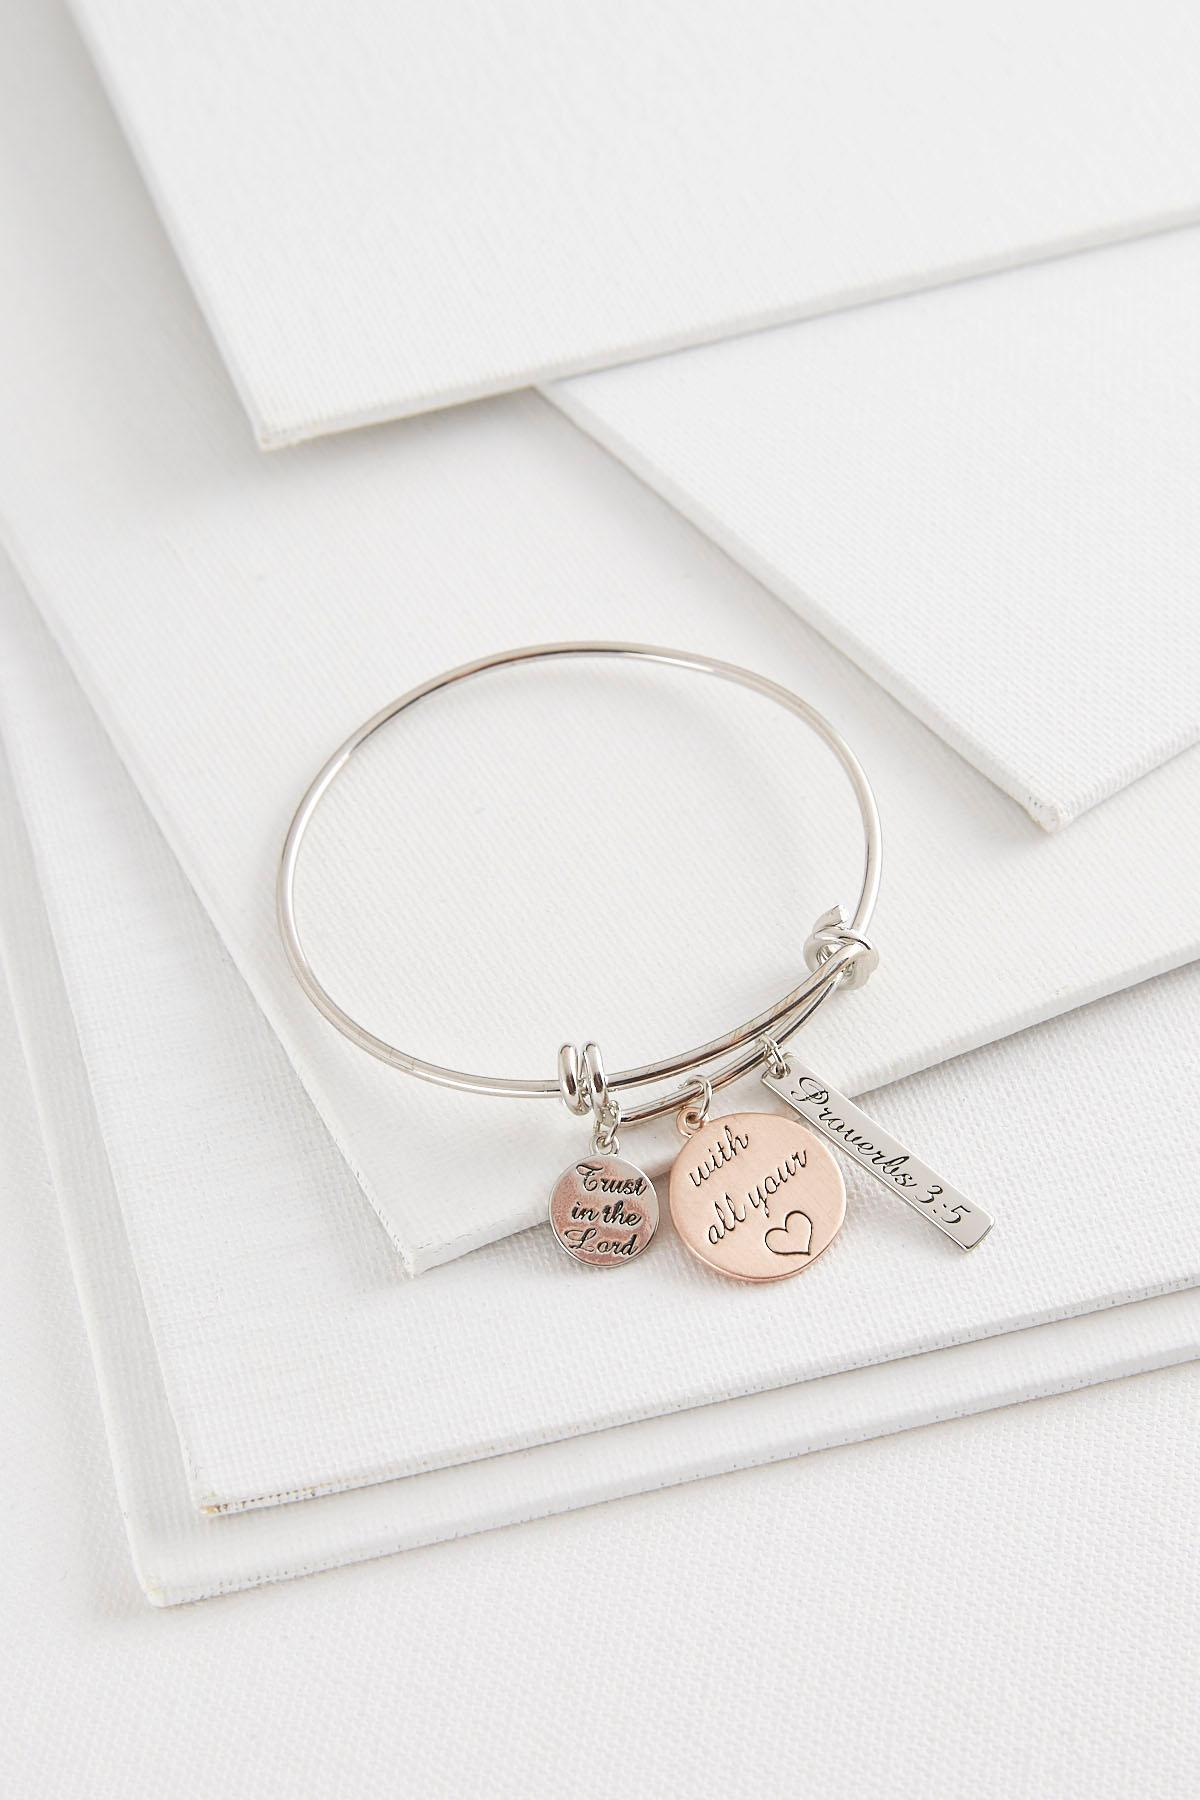 Trust In The Lord Charm Bracelet